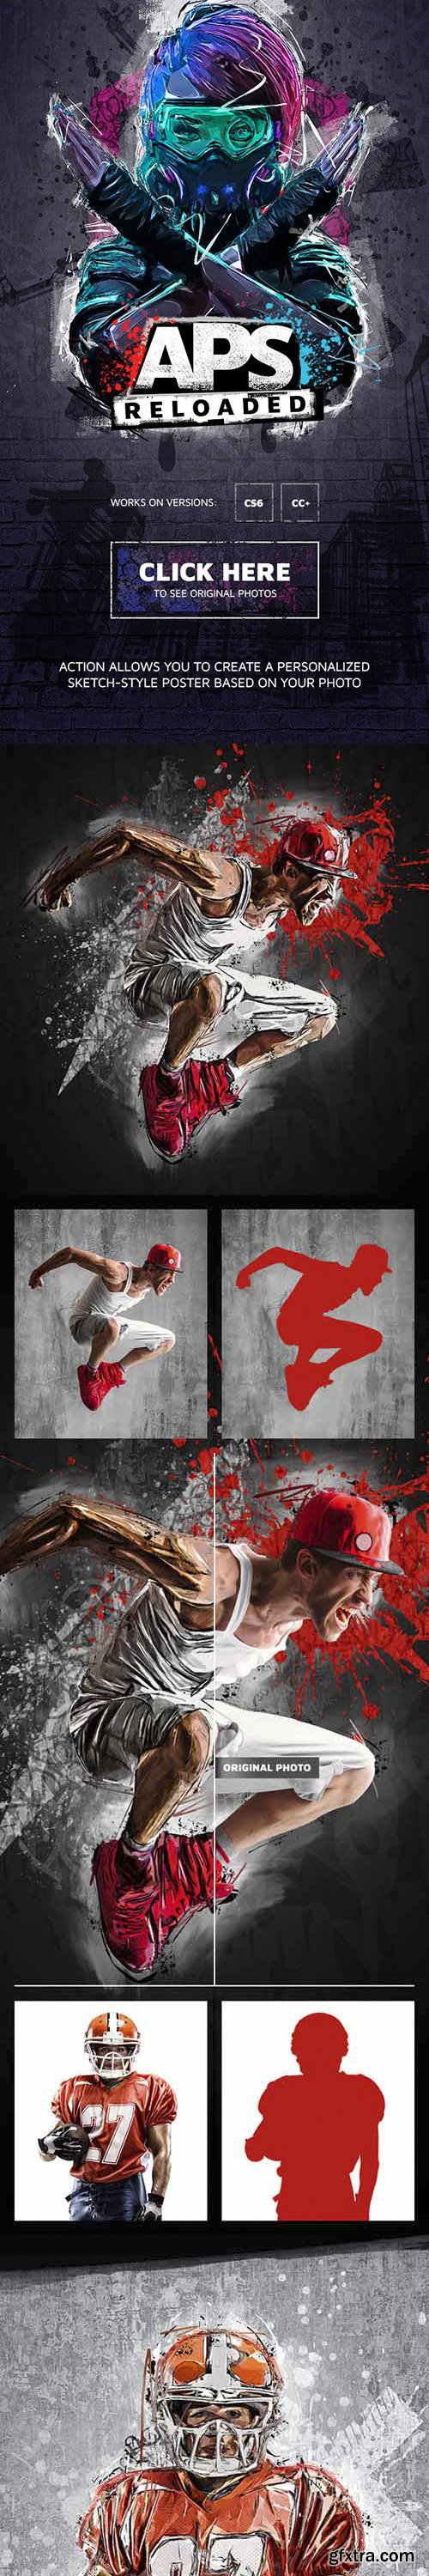 GraphicRiver - APS Reloaded Photoshop Action 28217578